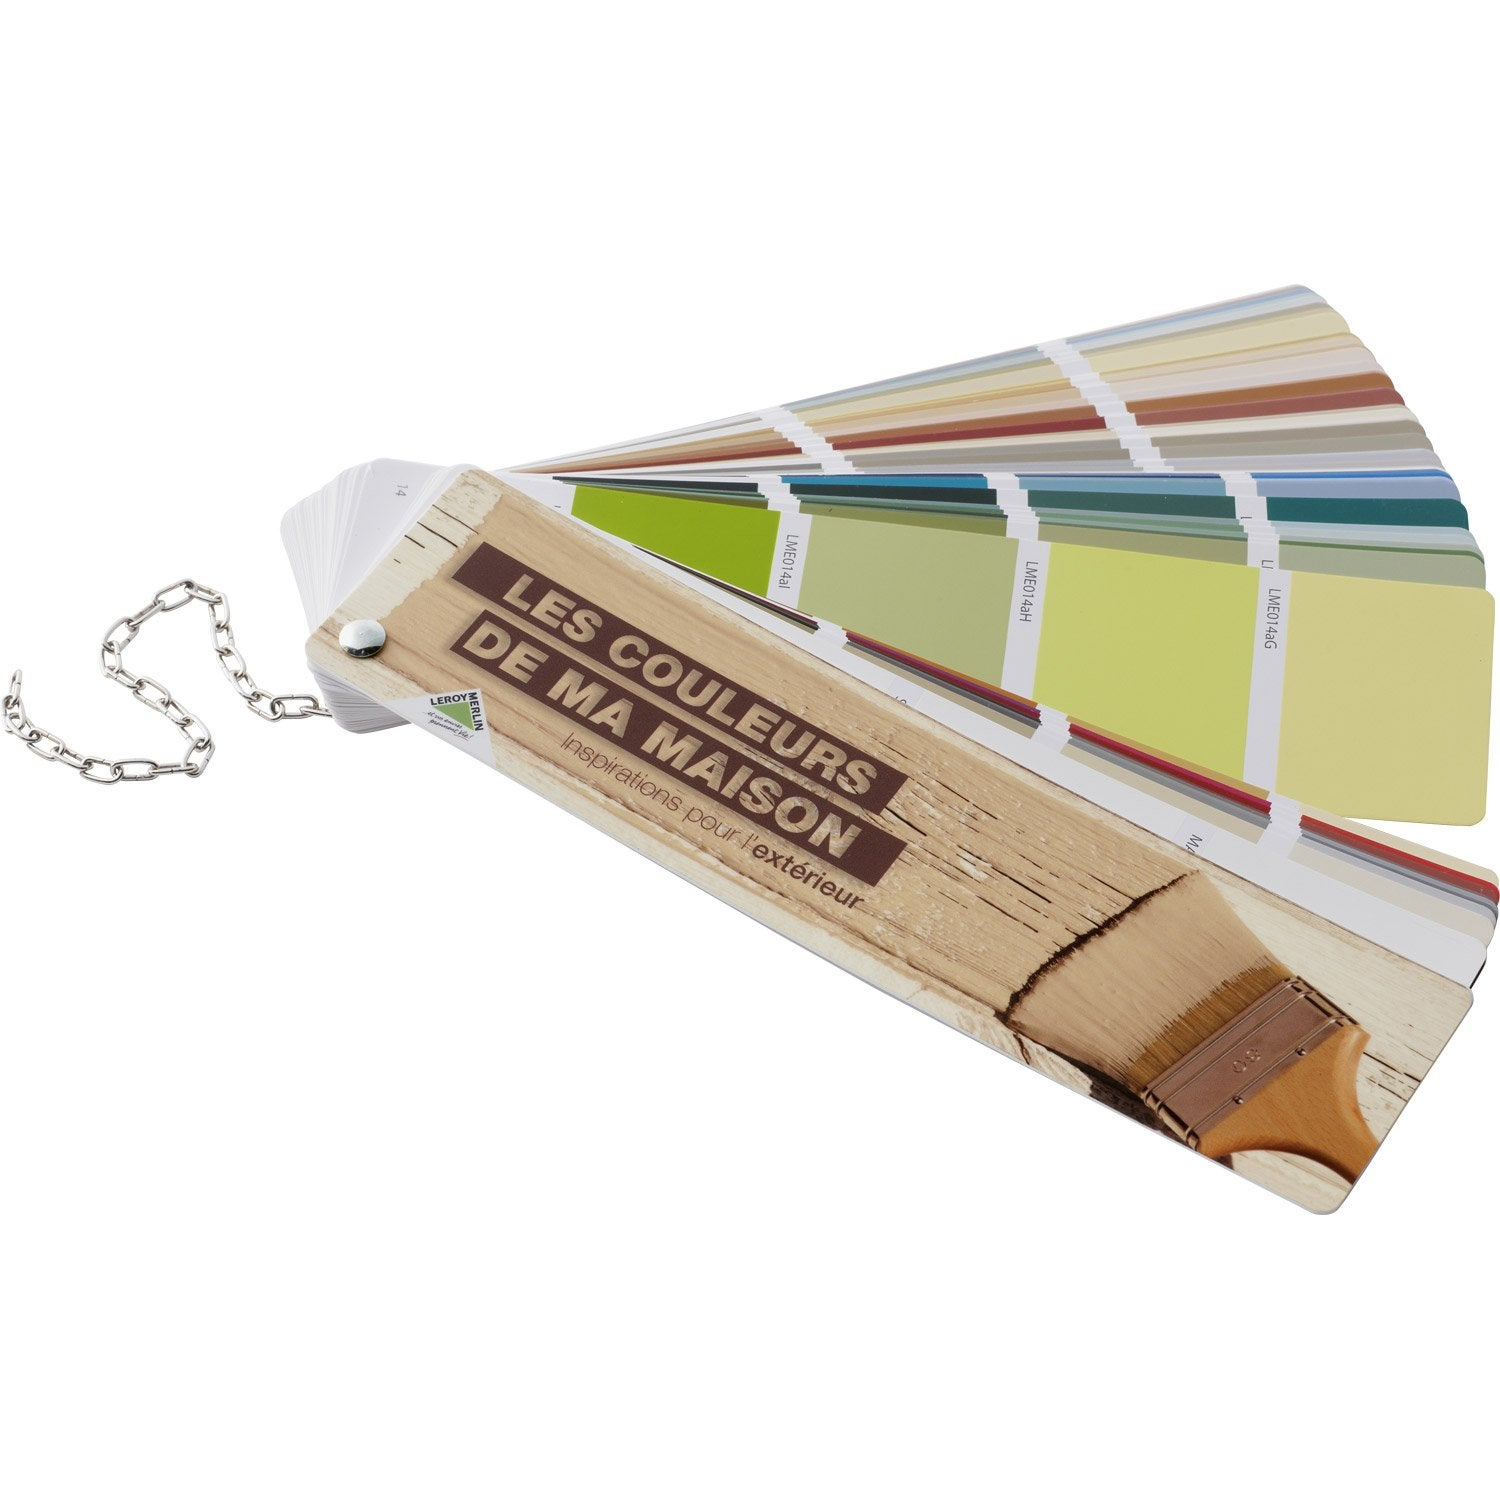 Nuancier les couleurs de ma maison ext rieur leroy - Collection maison leroy merlin ...